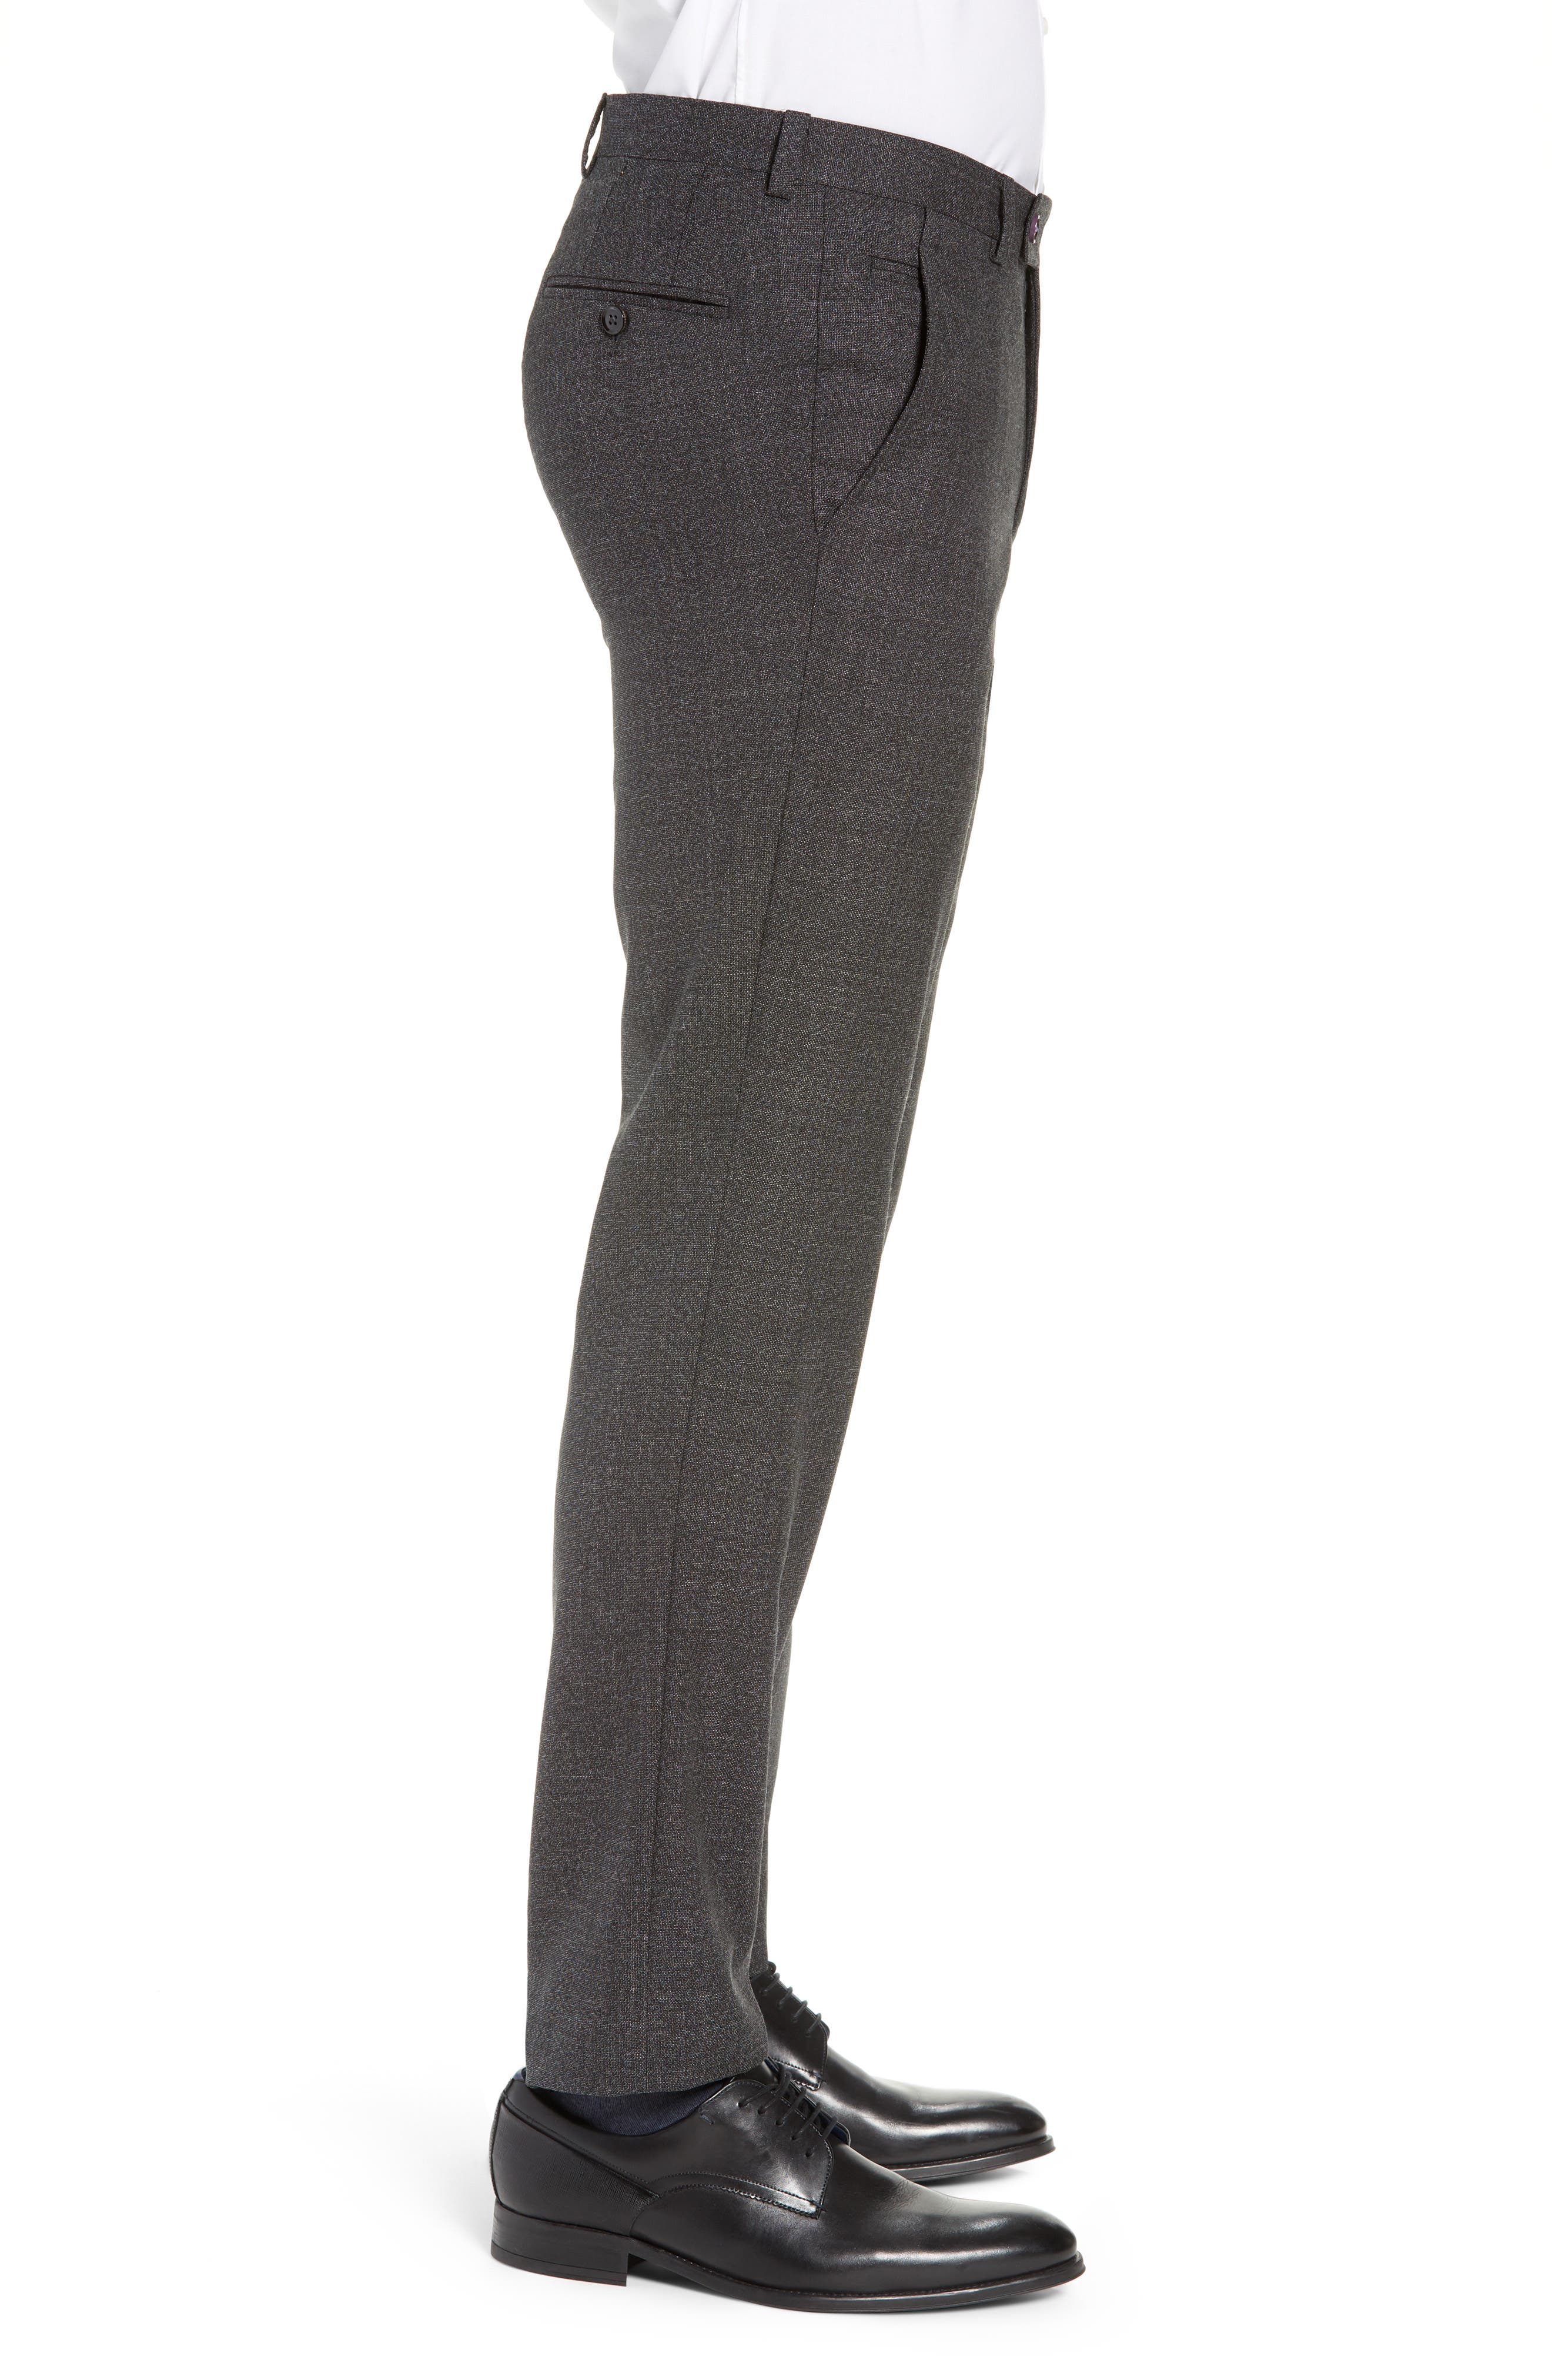 TED BAKER LONDON, Jerome Flat Front Solid Wool Trousers, Alternate thumbnail 3, color, CHARCOAL